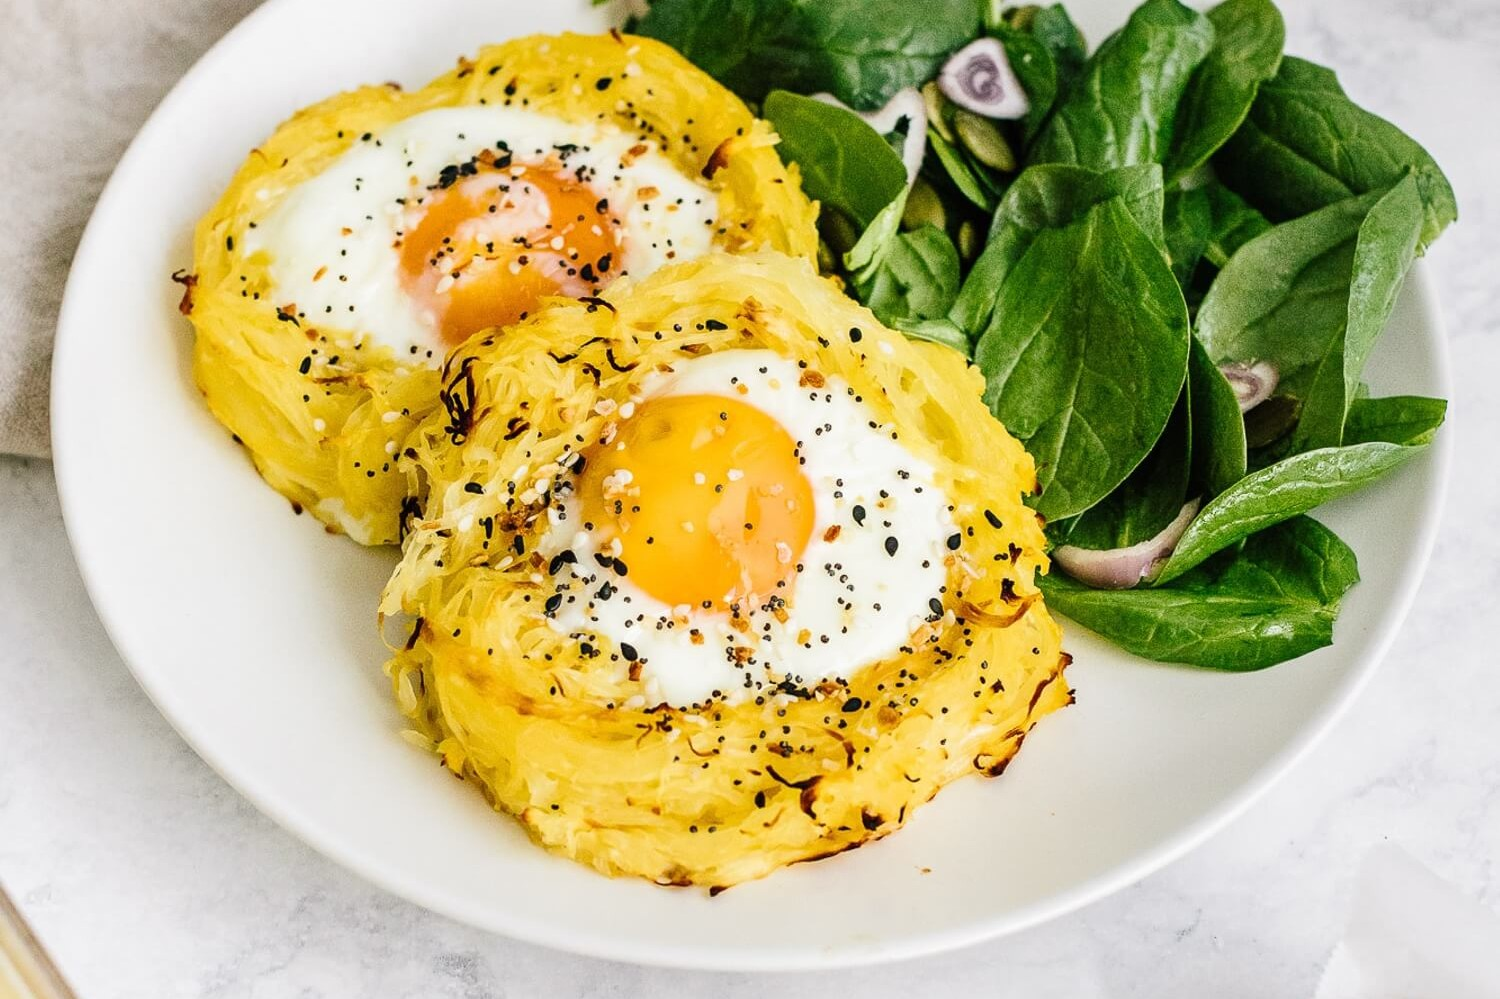 This picture features spaghetti squash shaped like a bird's nest. In the middle of the nest is a sunnyside up organic egg. Enjoy with mixed green and fresh black pepper. | peteandgerrys.com